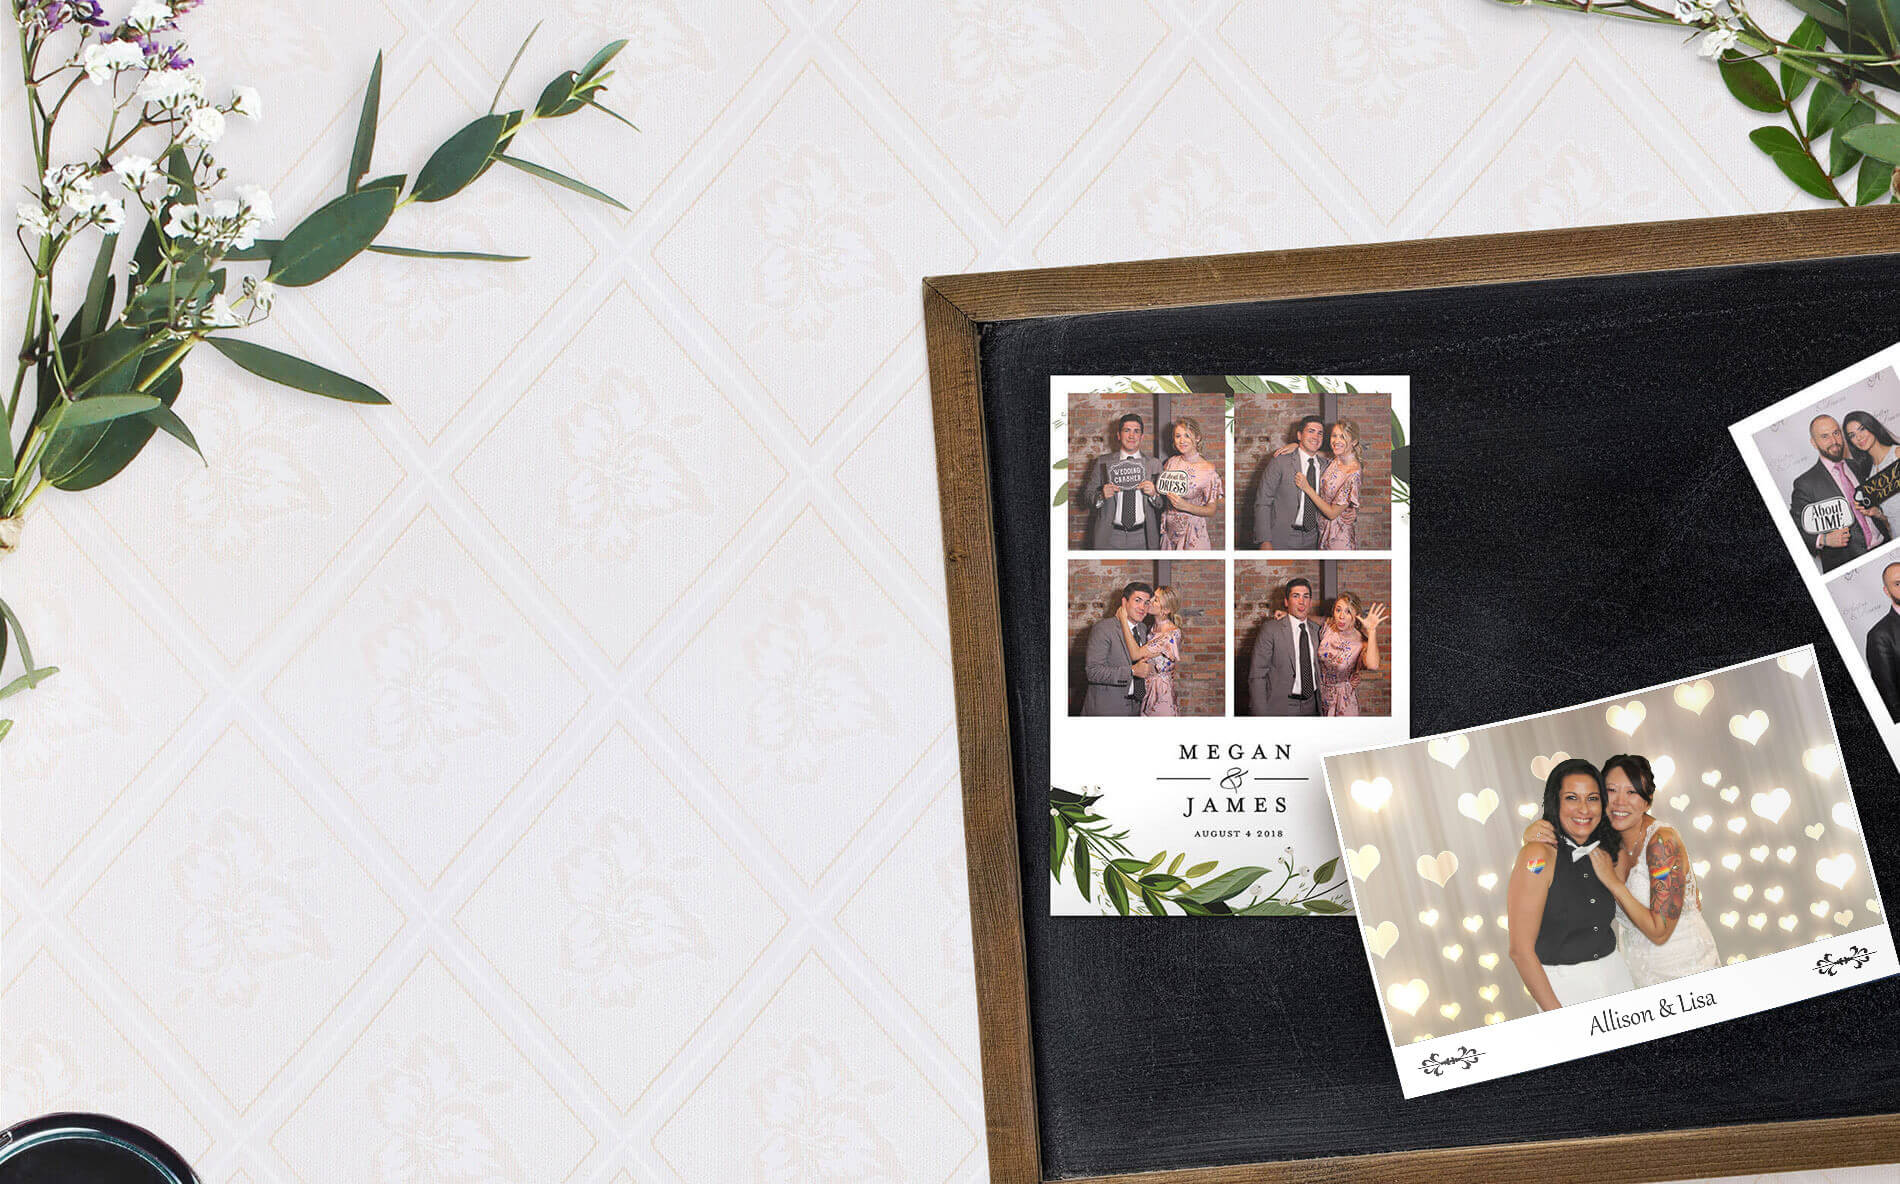 photo booth wedding collage photo